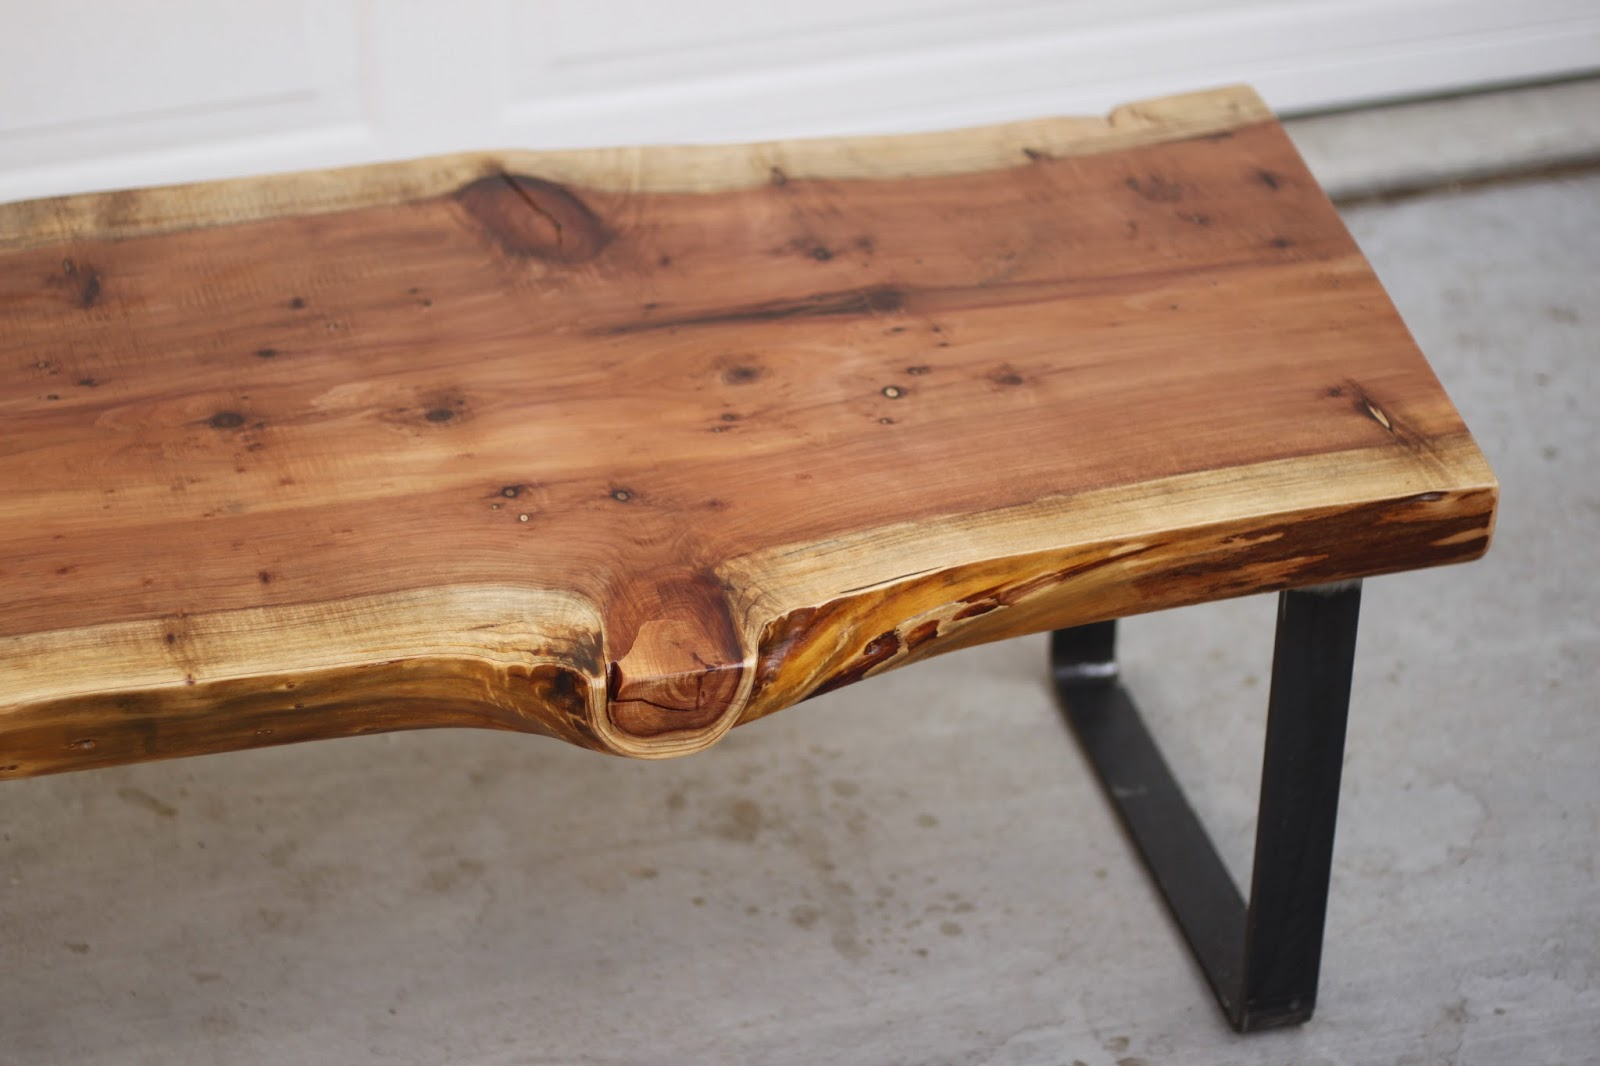 Arbor exchange reclaimed wood furniture redwood slab for Reclaimed wood table designs